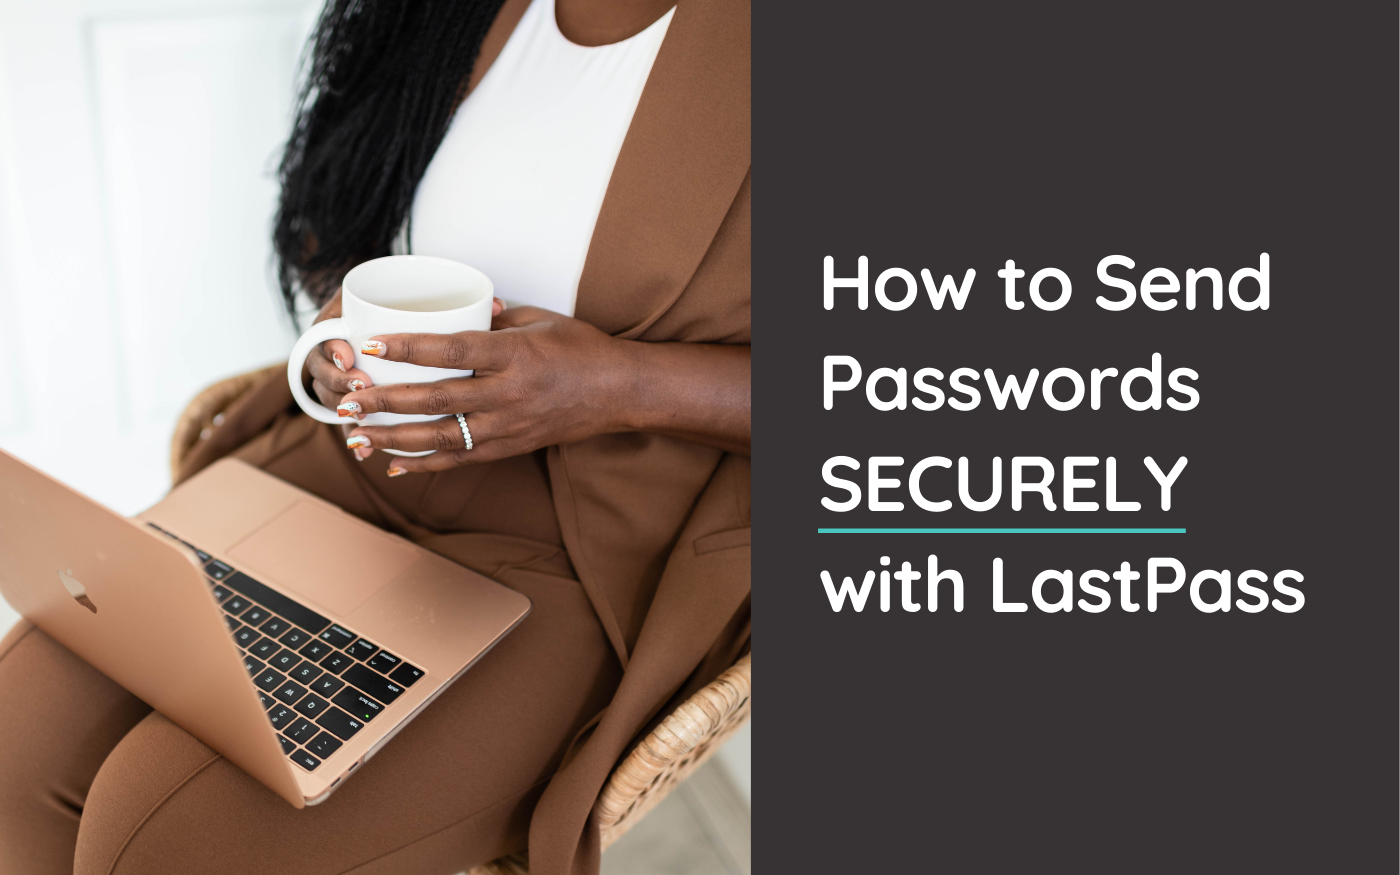 How to Securely Send Passwords Via LastPass